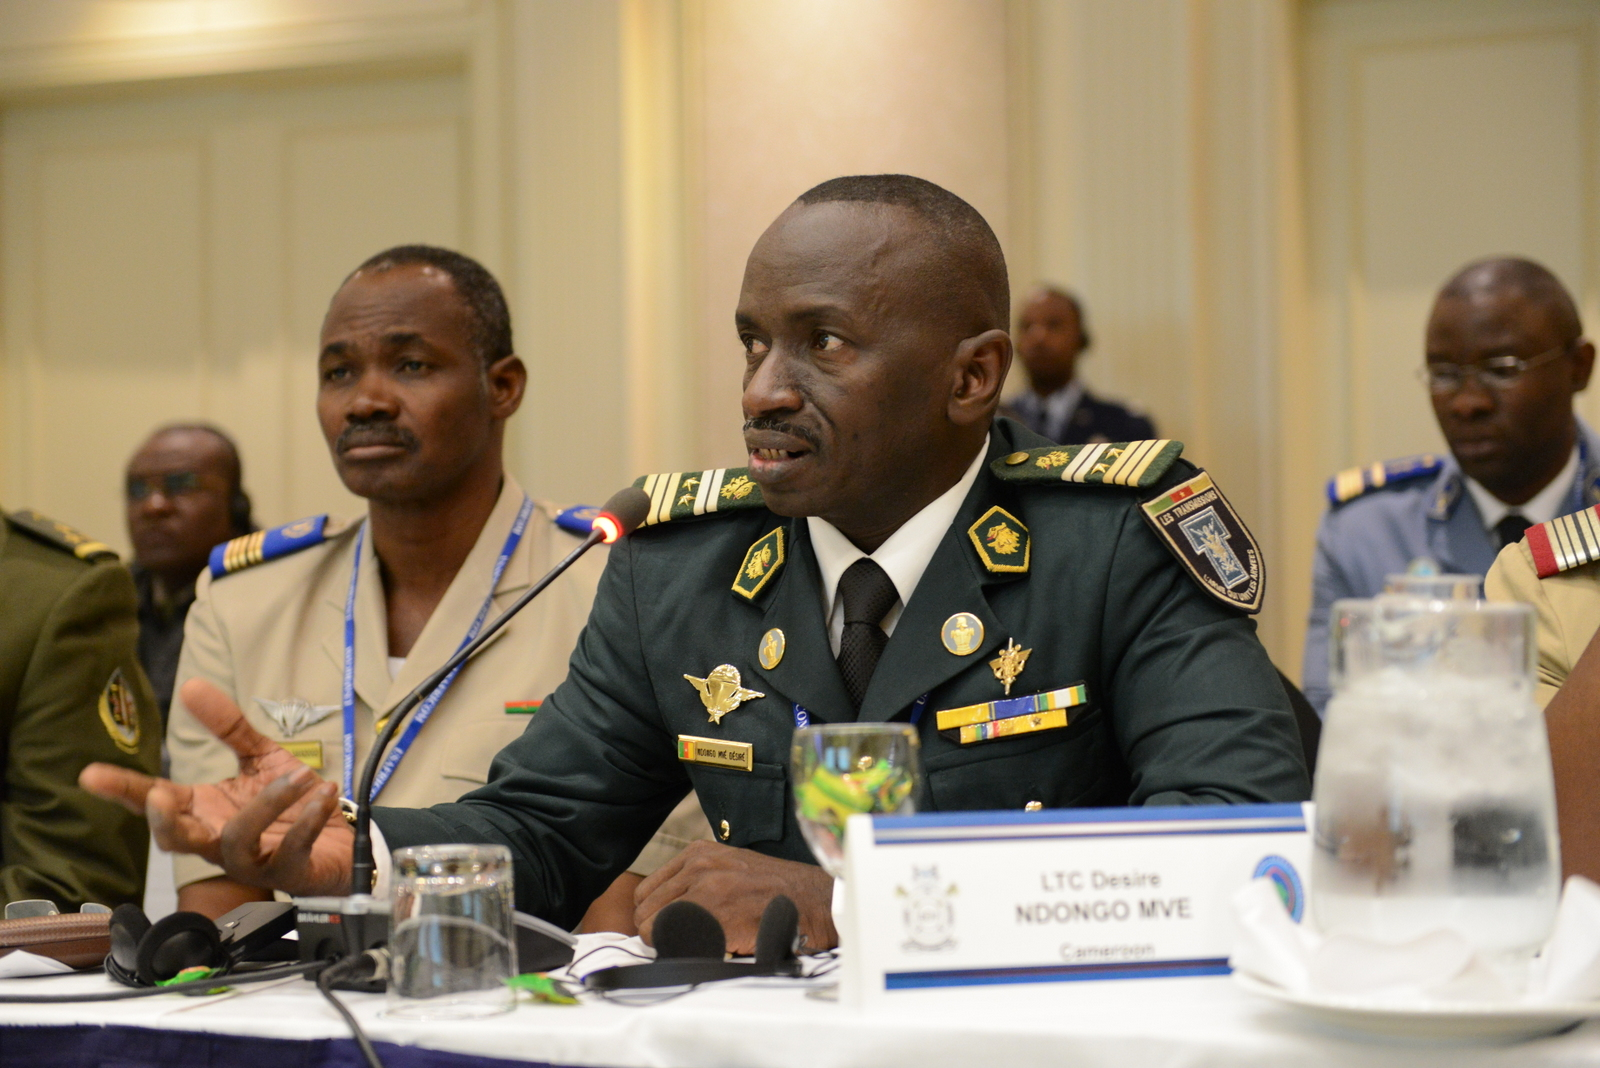 Cameroon Armed Forces Lt. Col. Ndongo Mvé Desiré comments during a table top exercise as part of Africa Endeavor 2015 in Gaborone, Botswana, Aug. 28, 2015. Sponsored by U.S. Africa Command, Africa Endeavor is an annual communications event designed to increase interoperability between partner nations in support of United Nations and African Union peacekeeping, disaster response and humanitarian assistance missions.